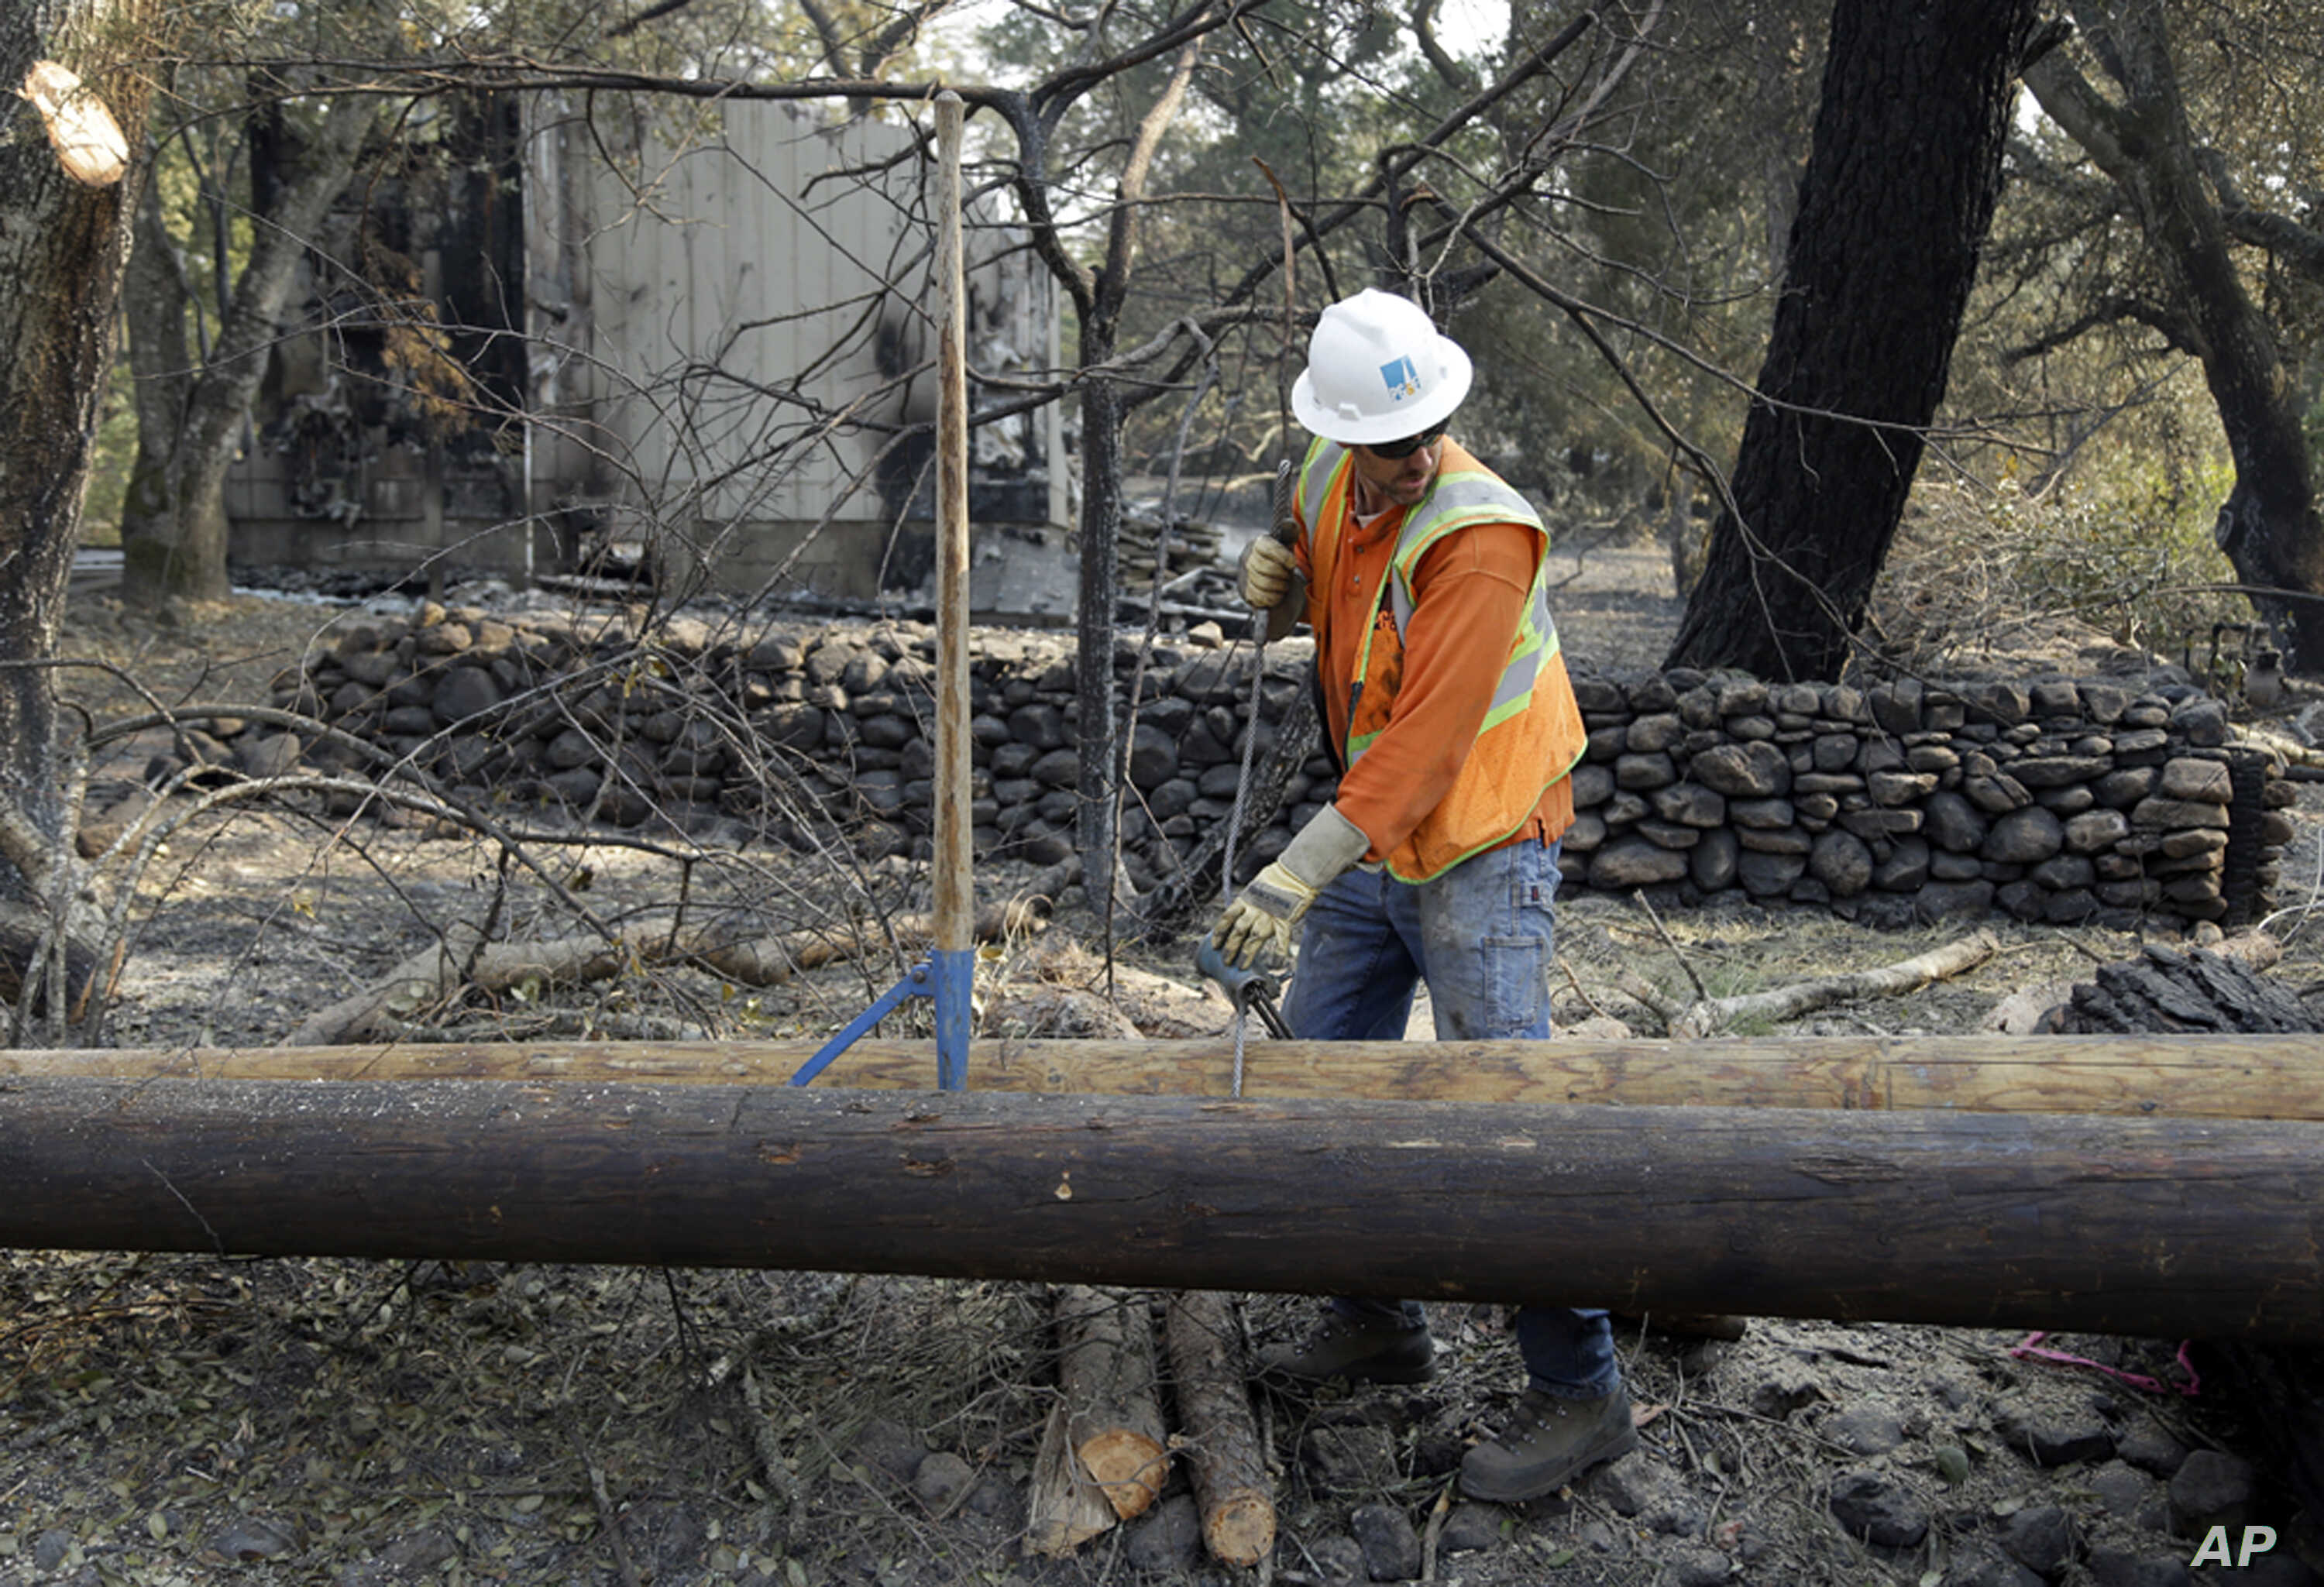 Southern California Electric >> Report Power Lines Sparked Massive Southern California Fire Voice